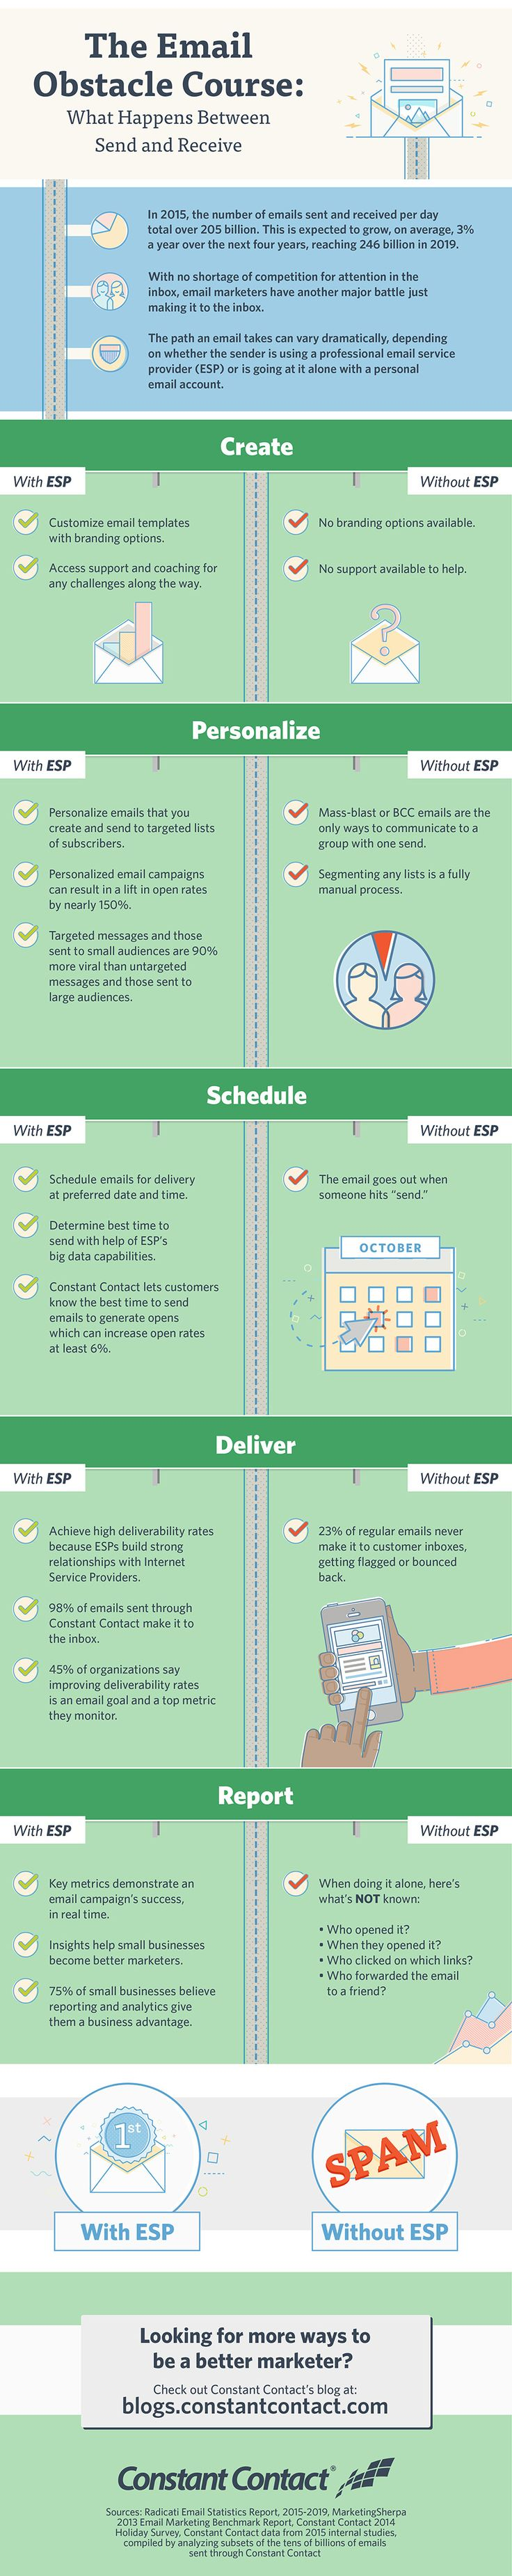 The Email Obstacle Course: What Happens Between Send and Receive #Infographic #EmailMarketing #Marketing